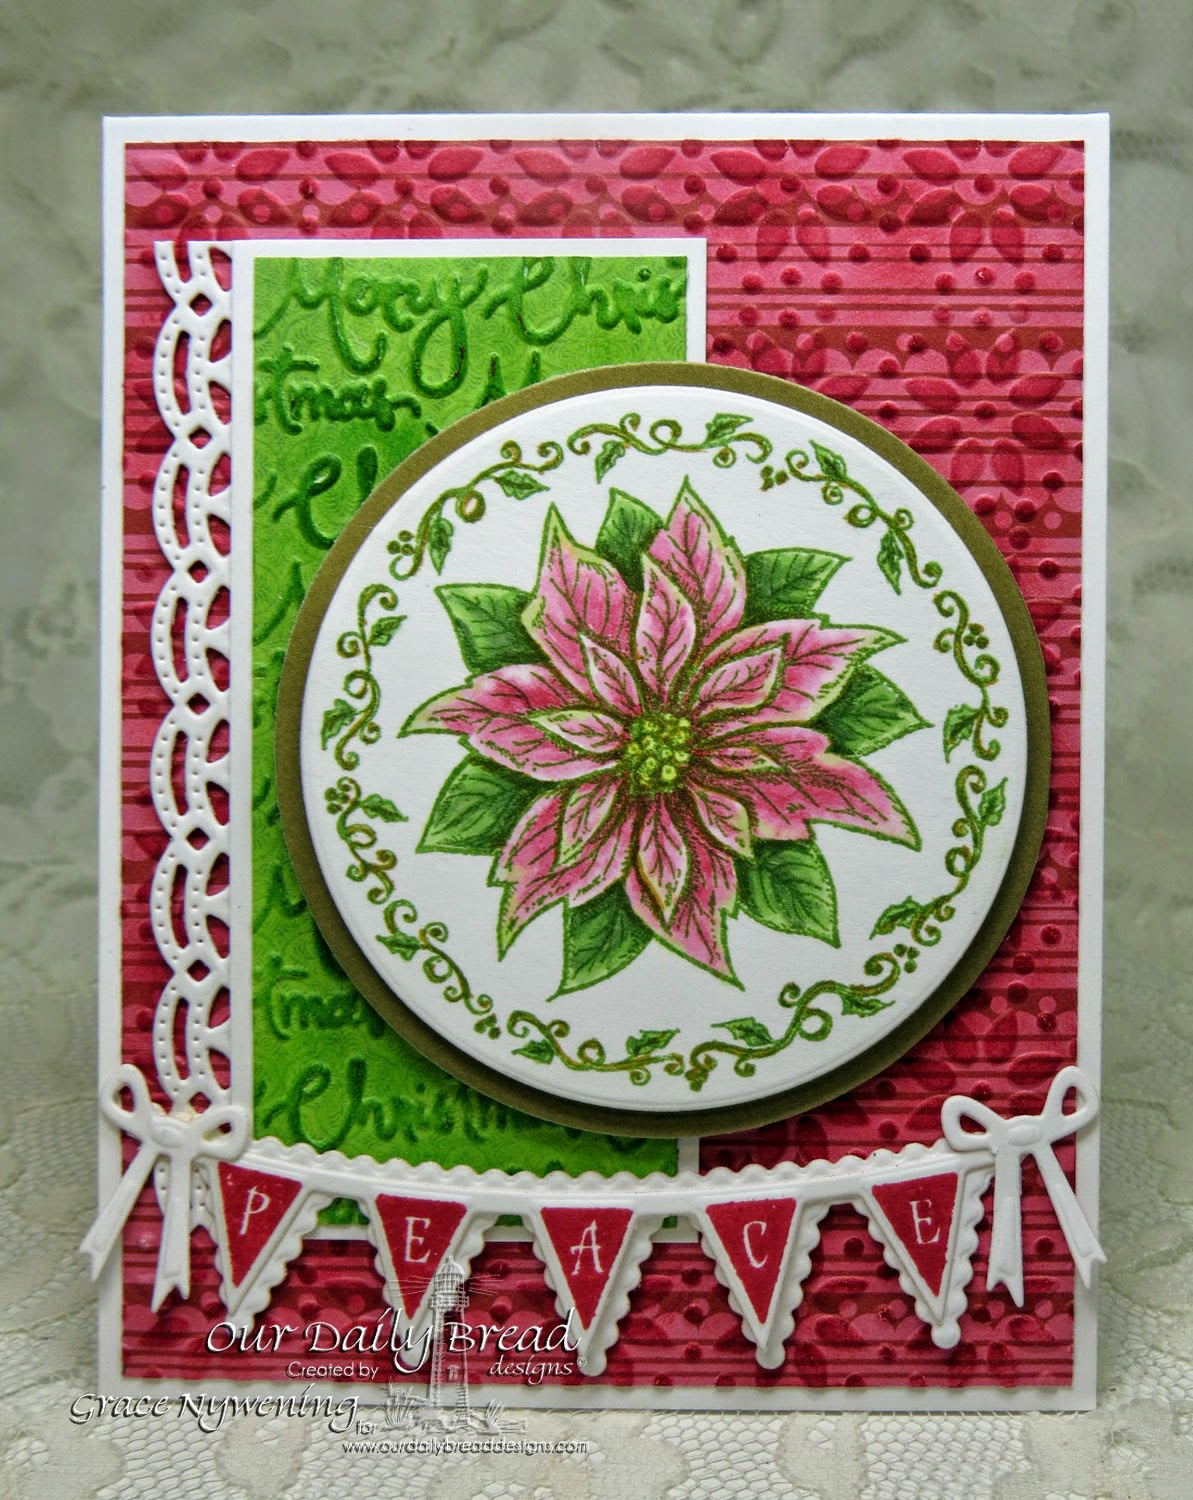 ODBD stamps: Poinsettia Ornament, Christmas Pennant Row, designed by Grace Nywening